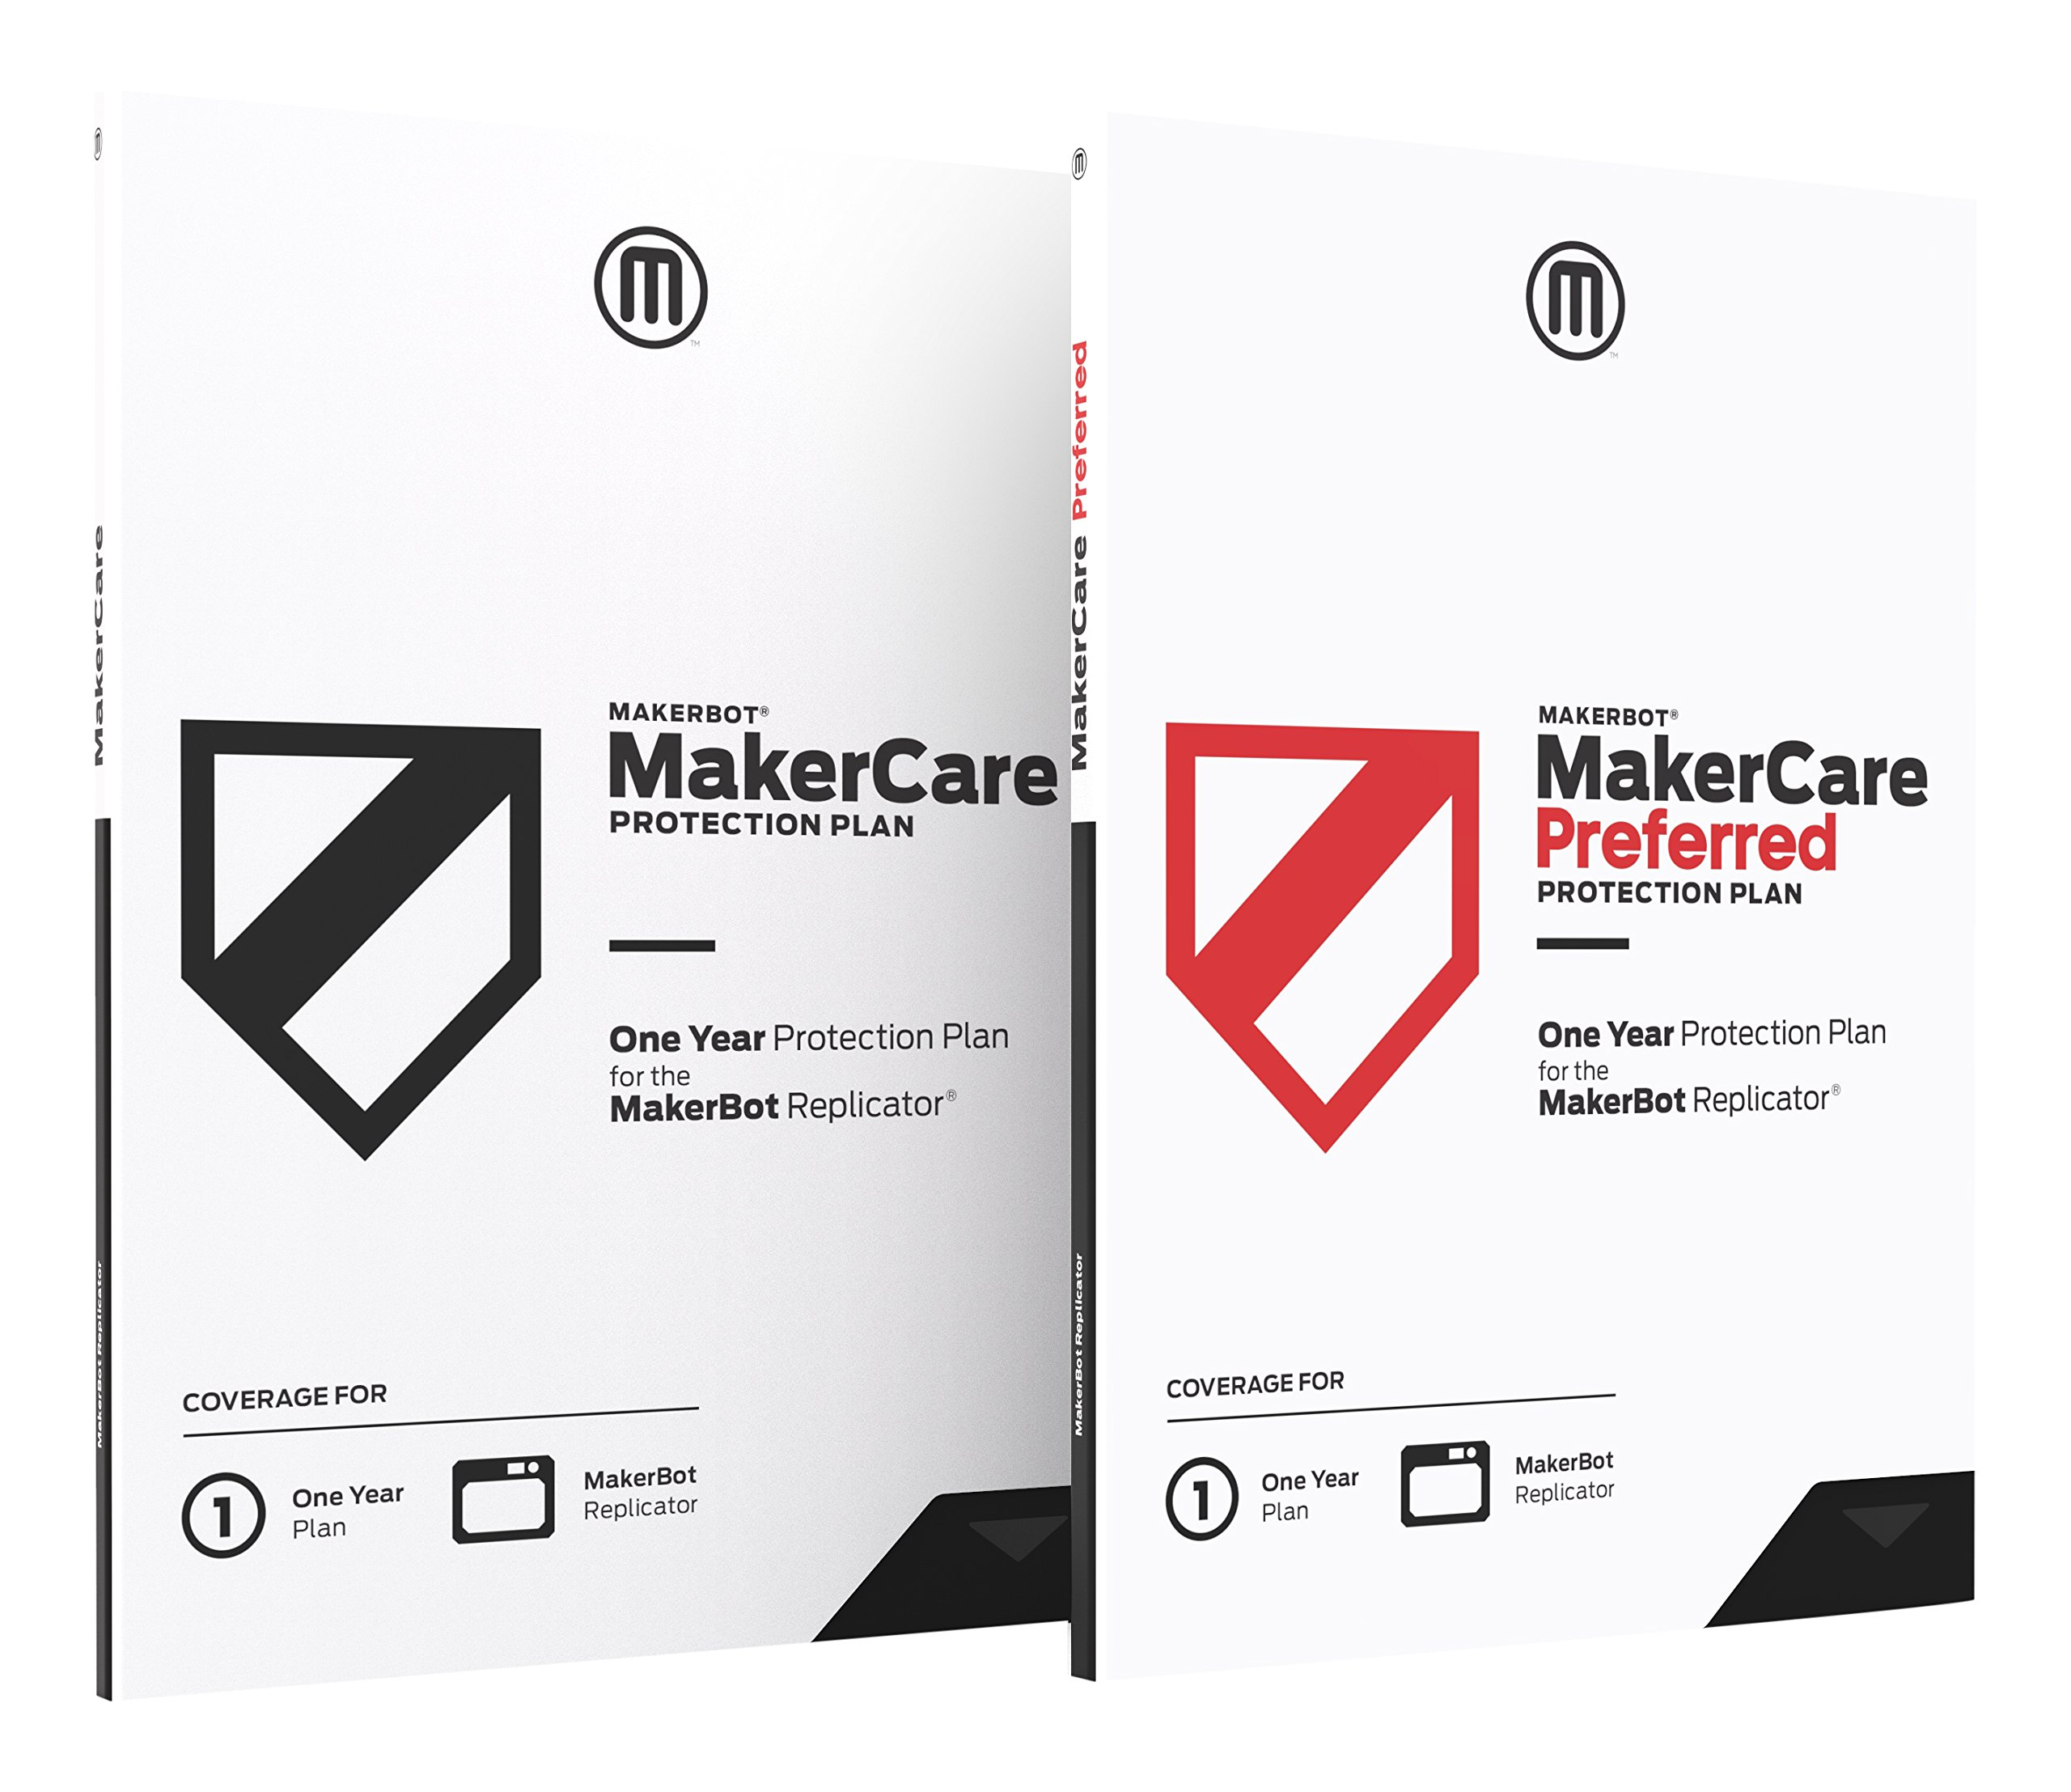 MakerBot MP07017 Makercare Preferred Protection Plan for Replicator+ - 2 Year